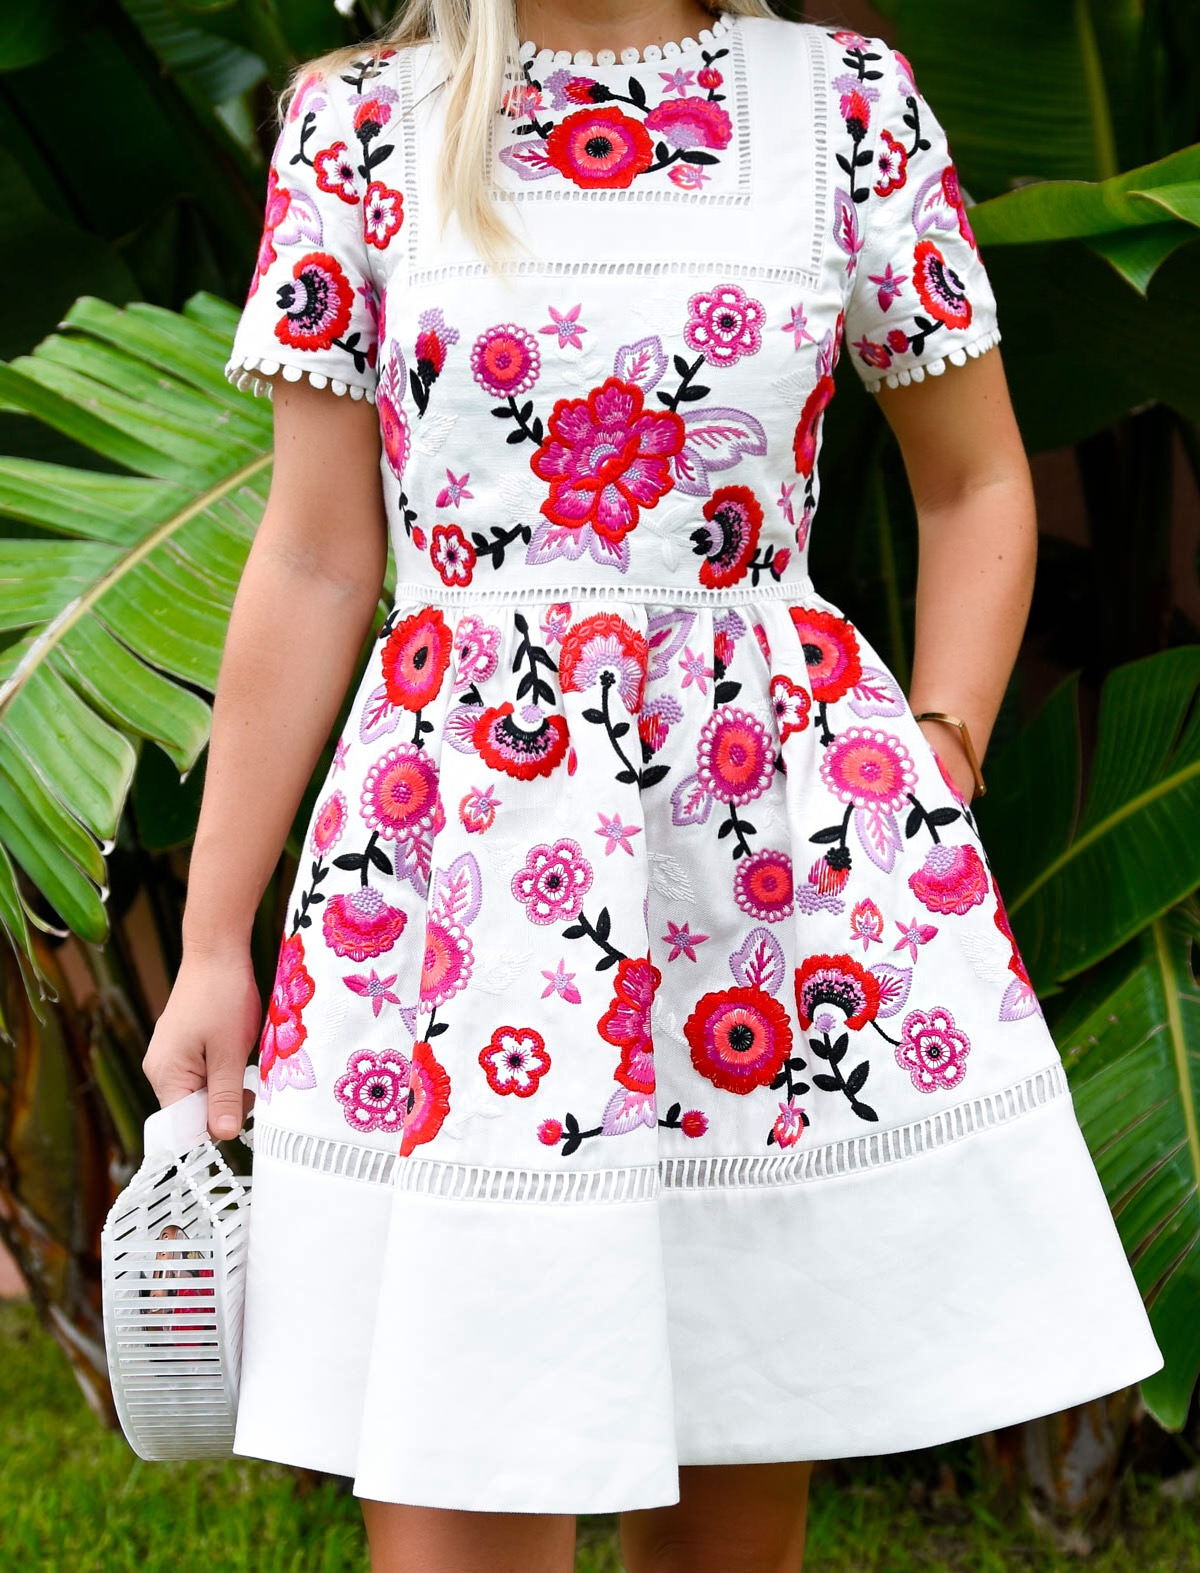 Kate Spade Madison Ave Collection, Kate Spade Briley Dress, Kate Spade Dress, Embroidered Dress, Bermuda, Pink Dress, Cult Gaia Bag, Embroidered Dress, Floral Dress